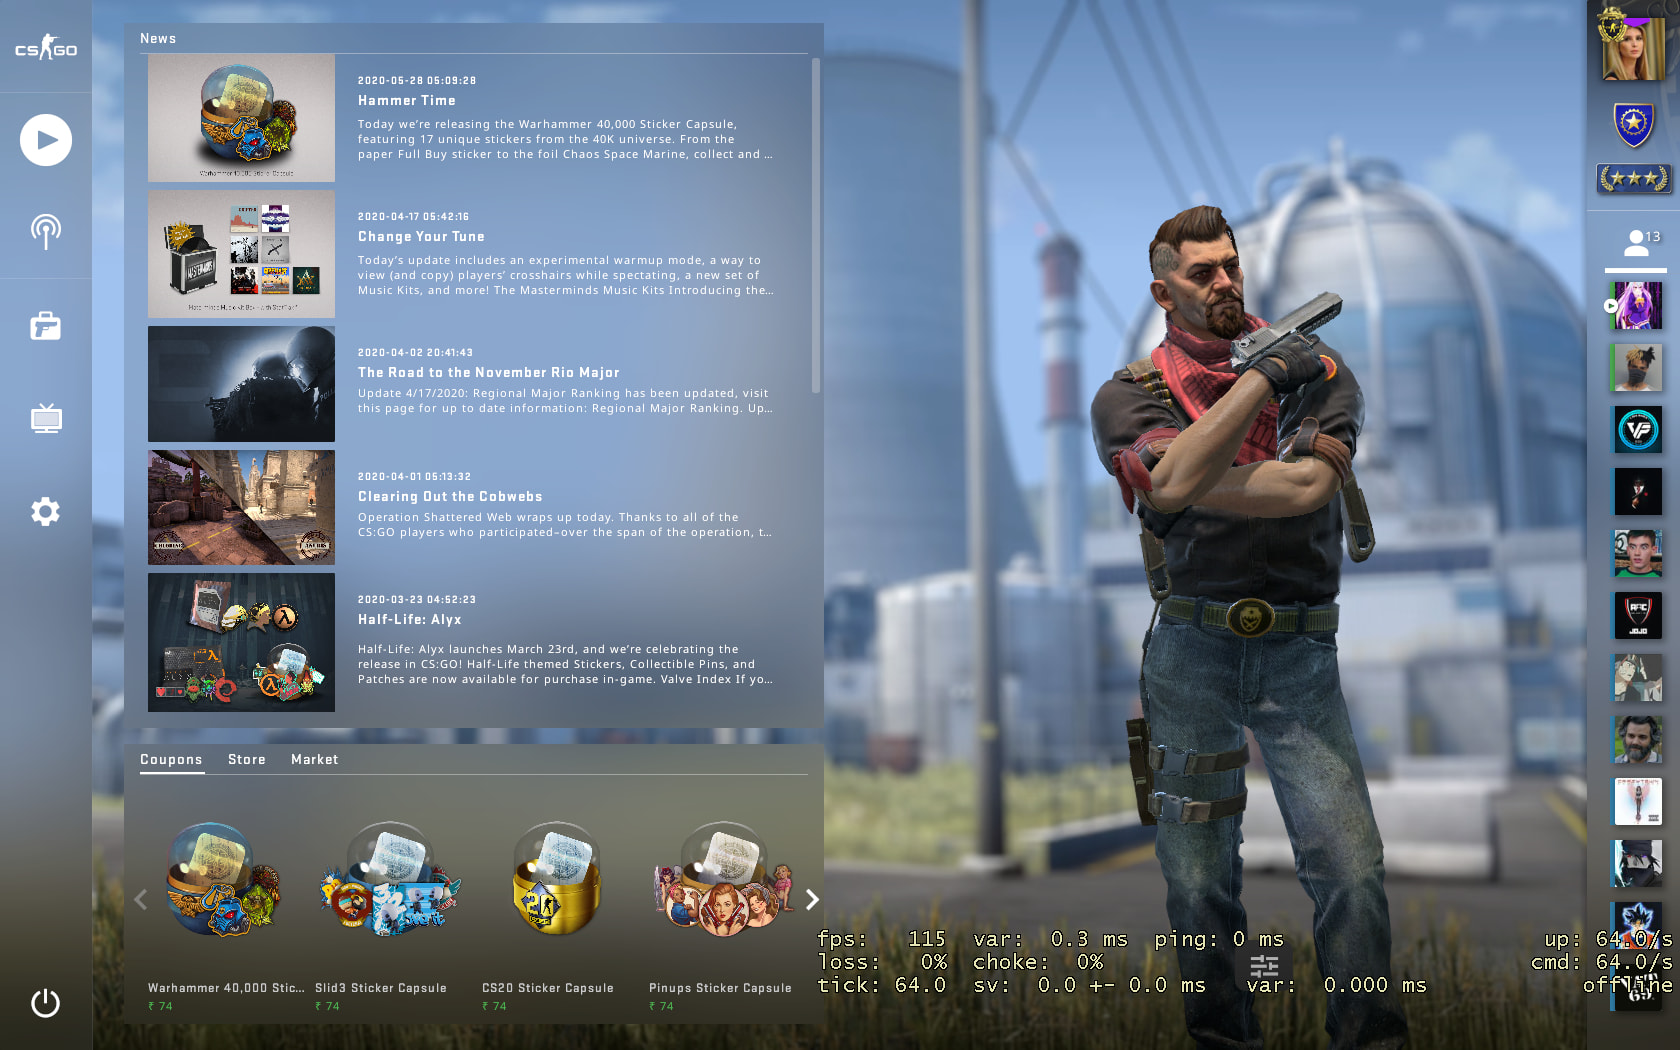 C4 Kill Feed, Improved Grenade Mechanics, Background Selection added In New BIG CSGO UPDATE 7